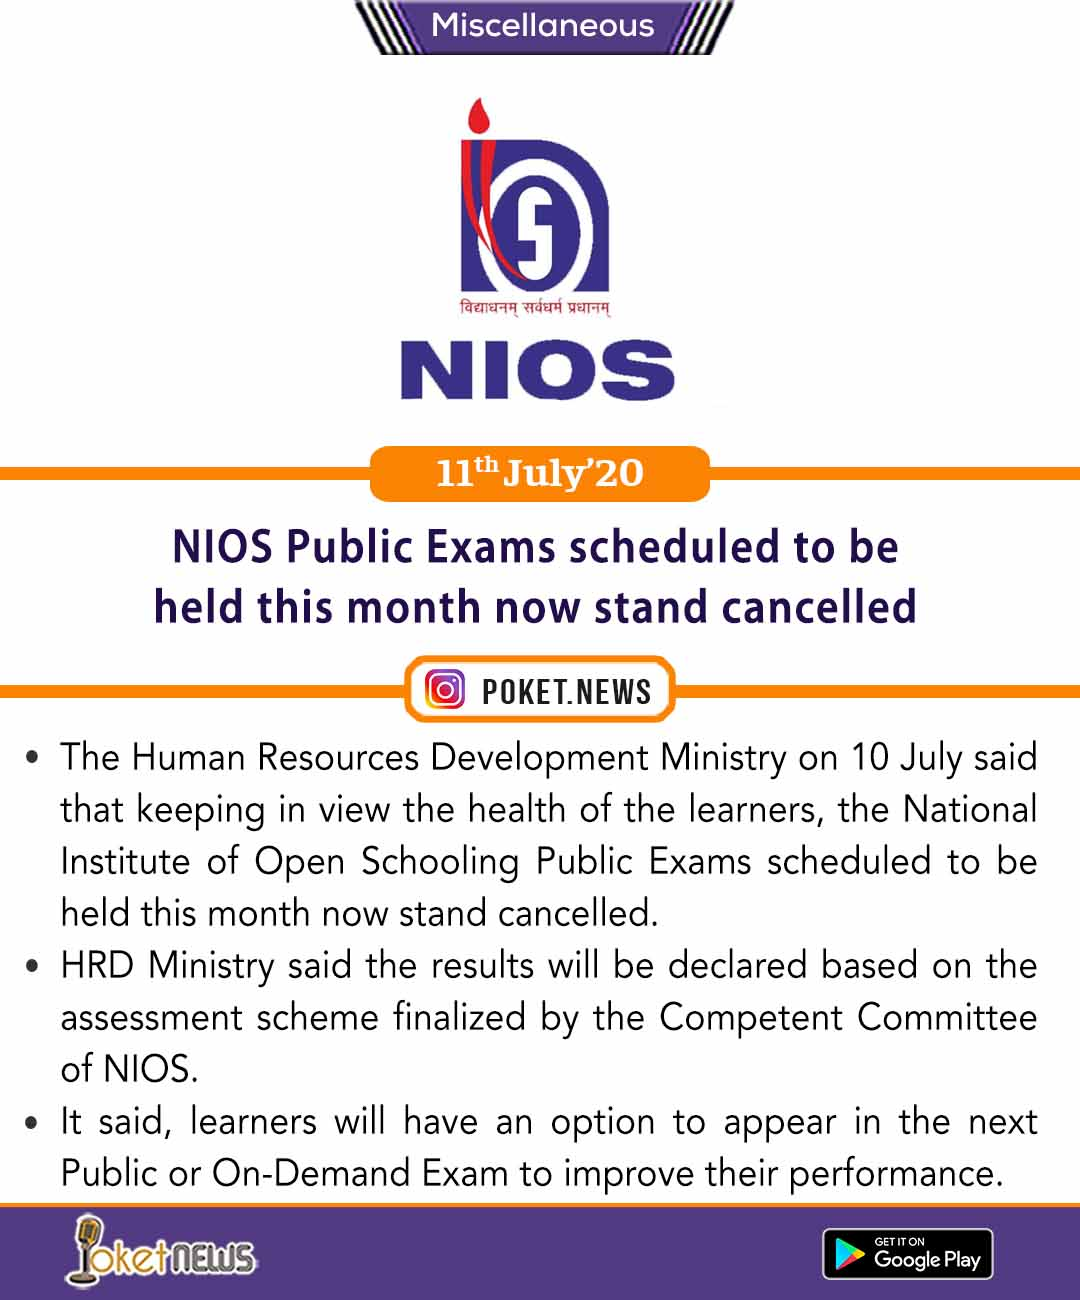 NIOS Public Exams scheduled to be held this month now stand cancelled